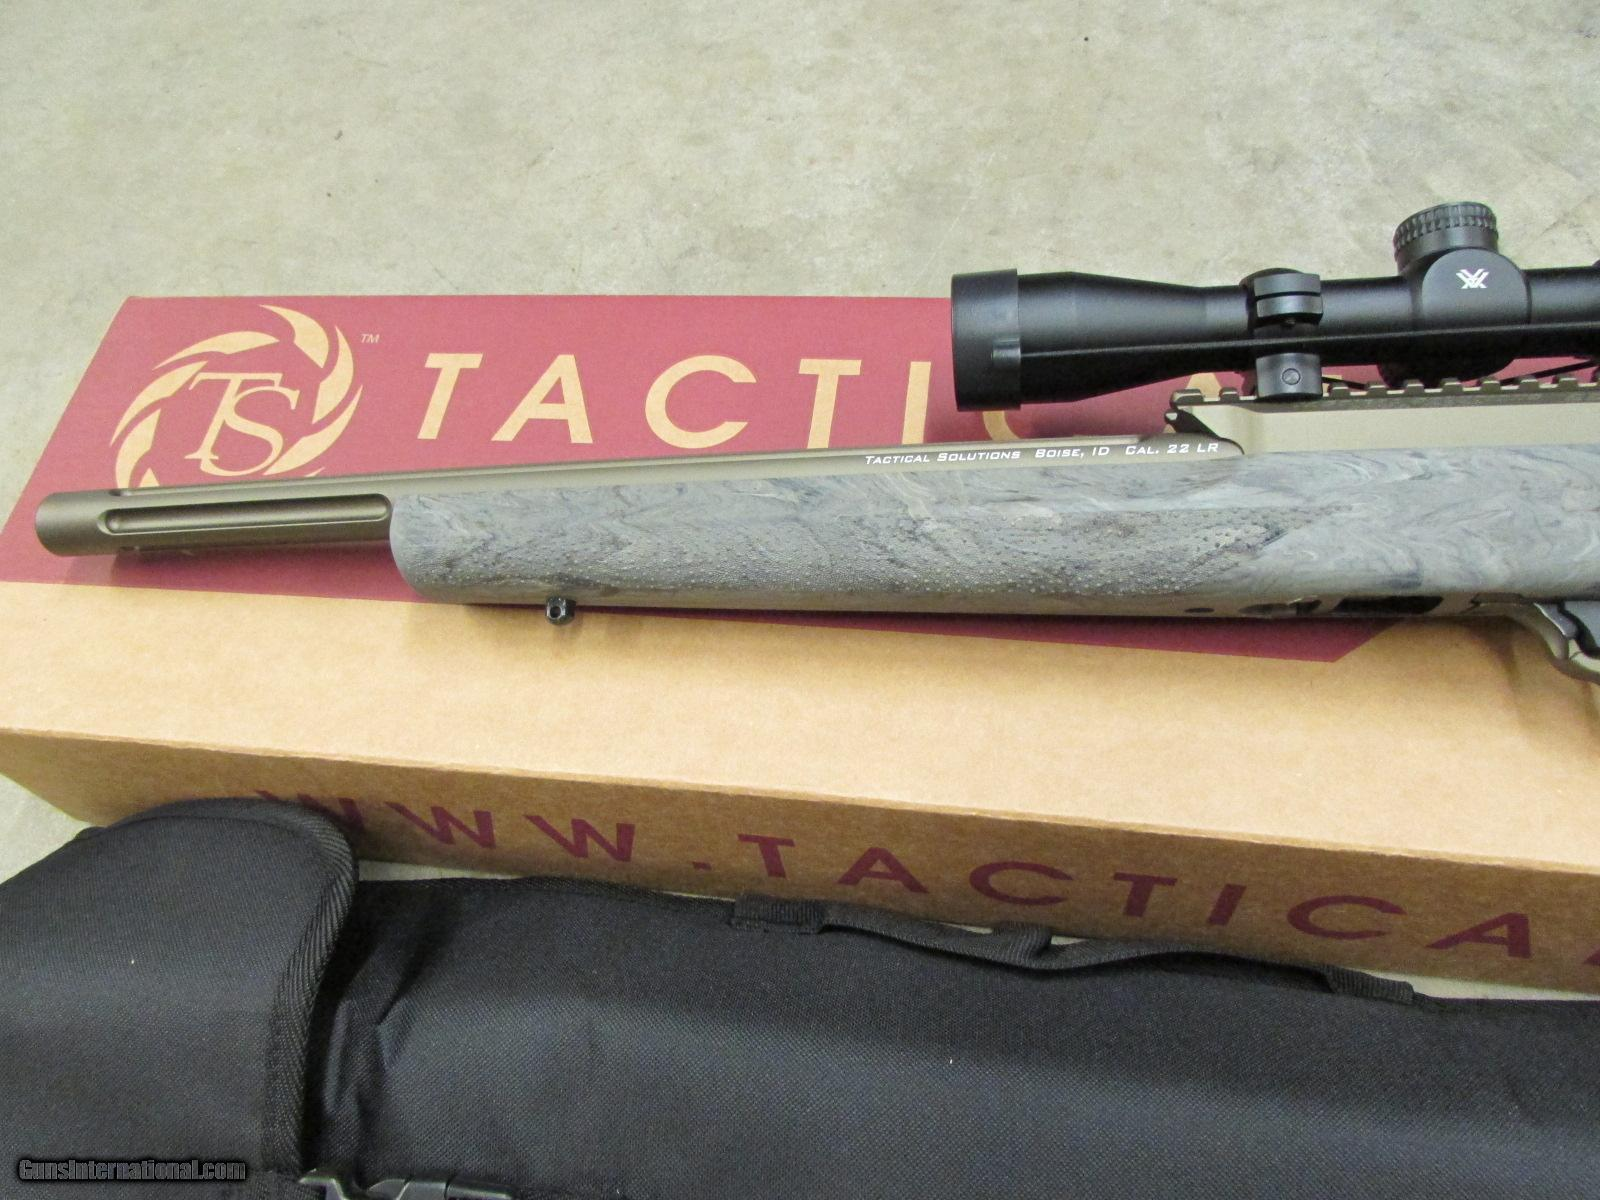 TACTICAL SOLUTIONS X RING RIFLE VORTEX 2 7X32 22 MOD OD HOGUE